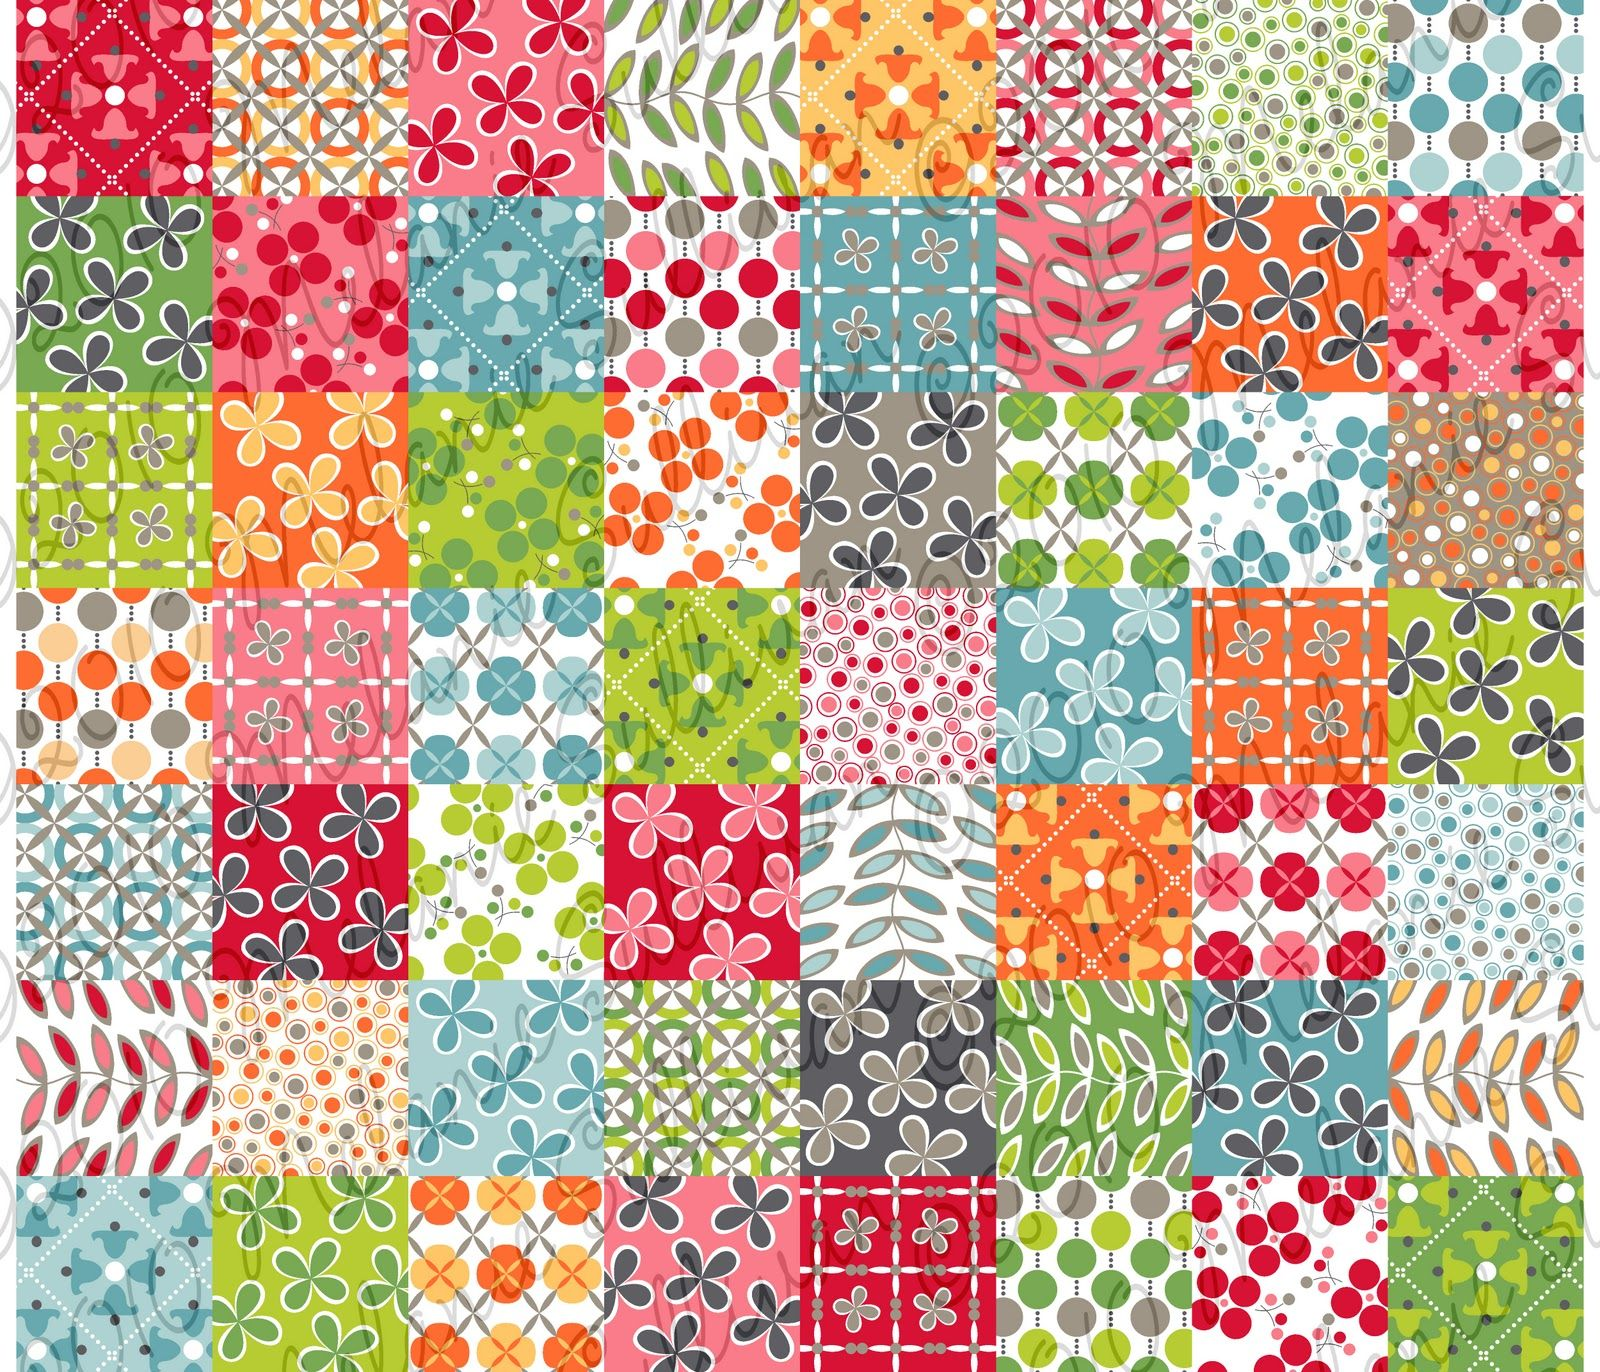 fun patterns tapetky pinterest patterns decoupage